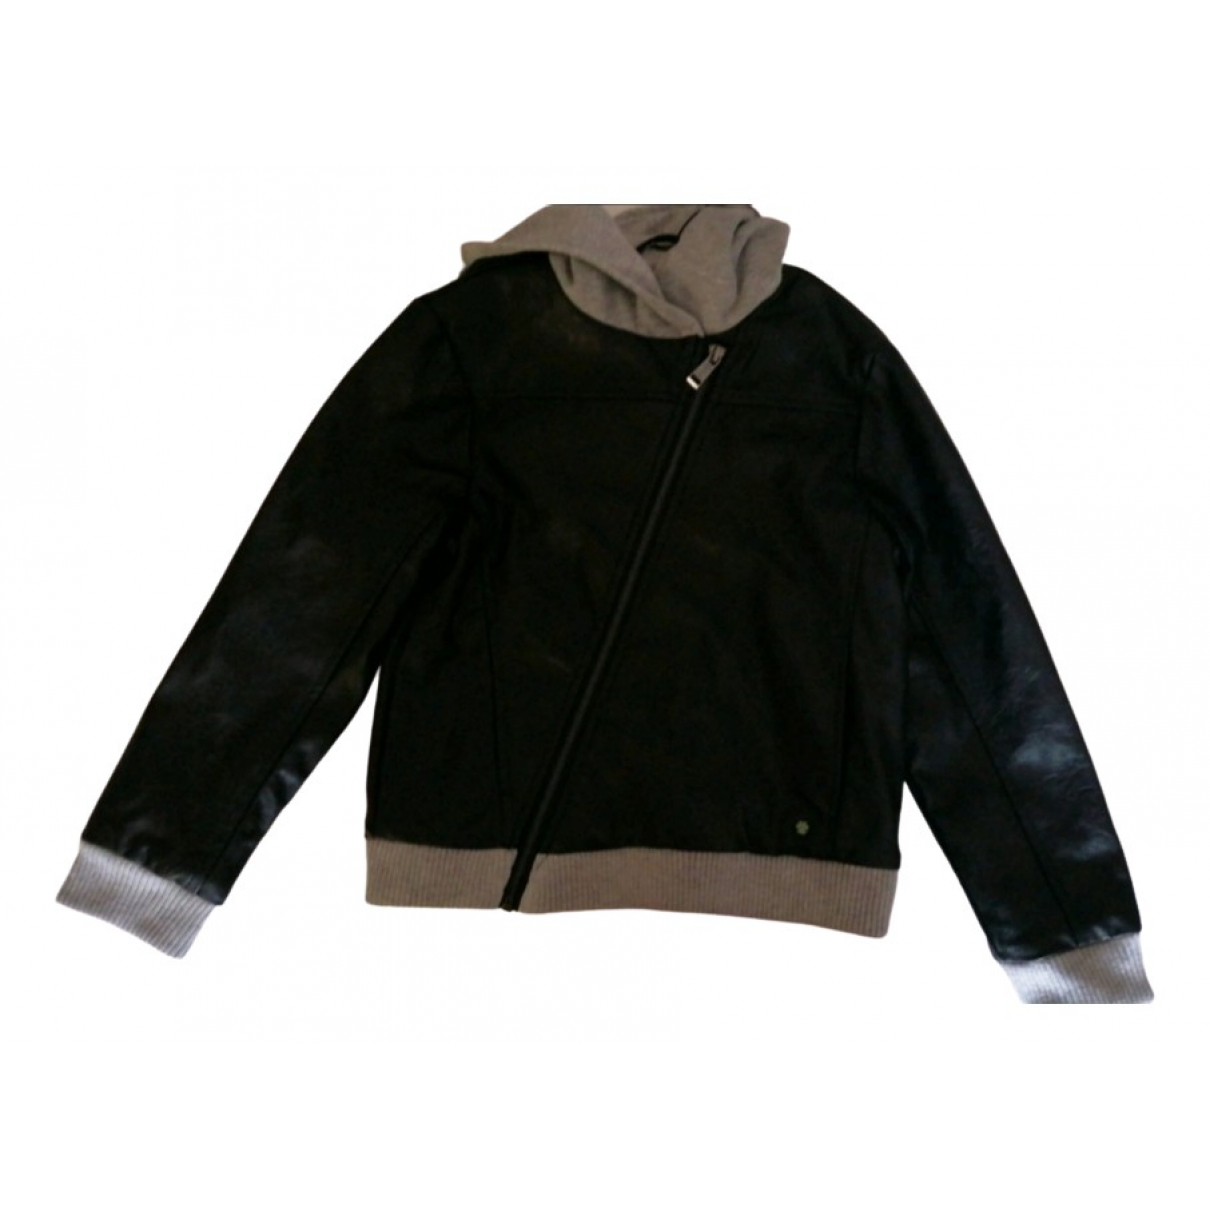 Guess \N Black jacket & coat for Kids 8 years - up to 128cm FR